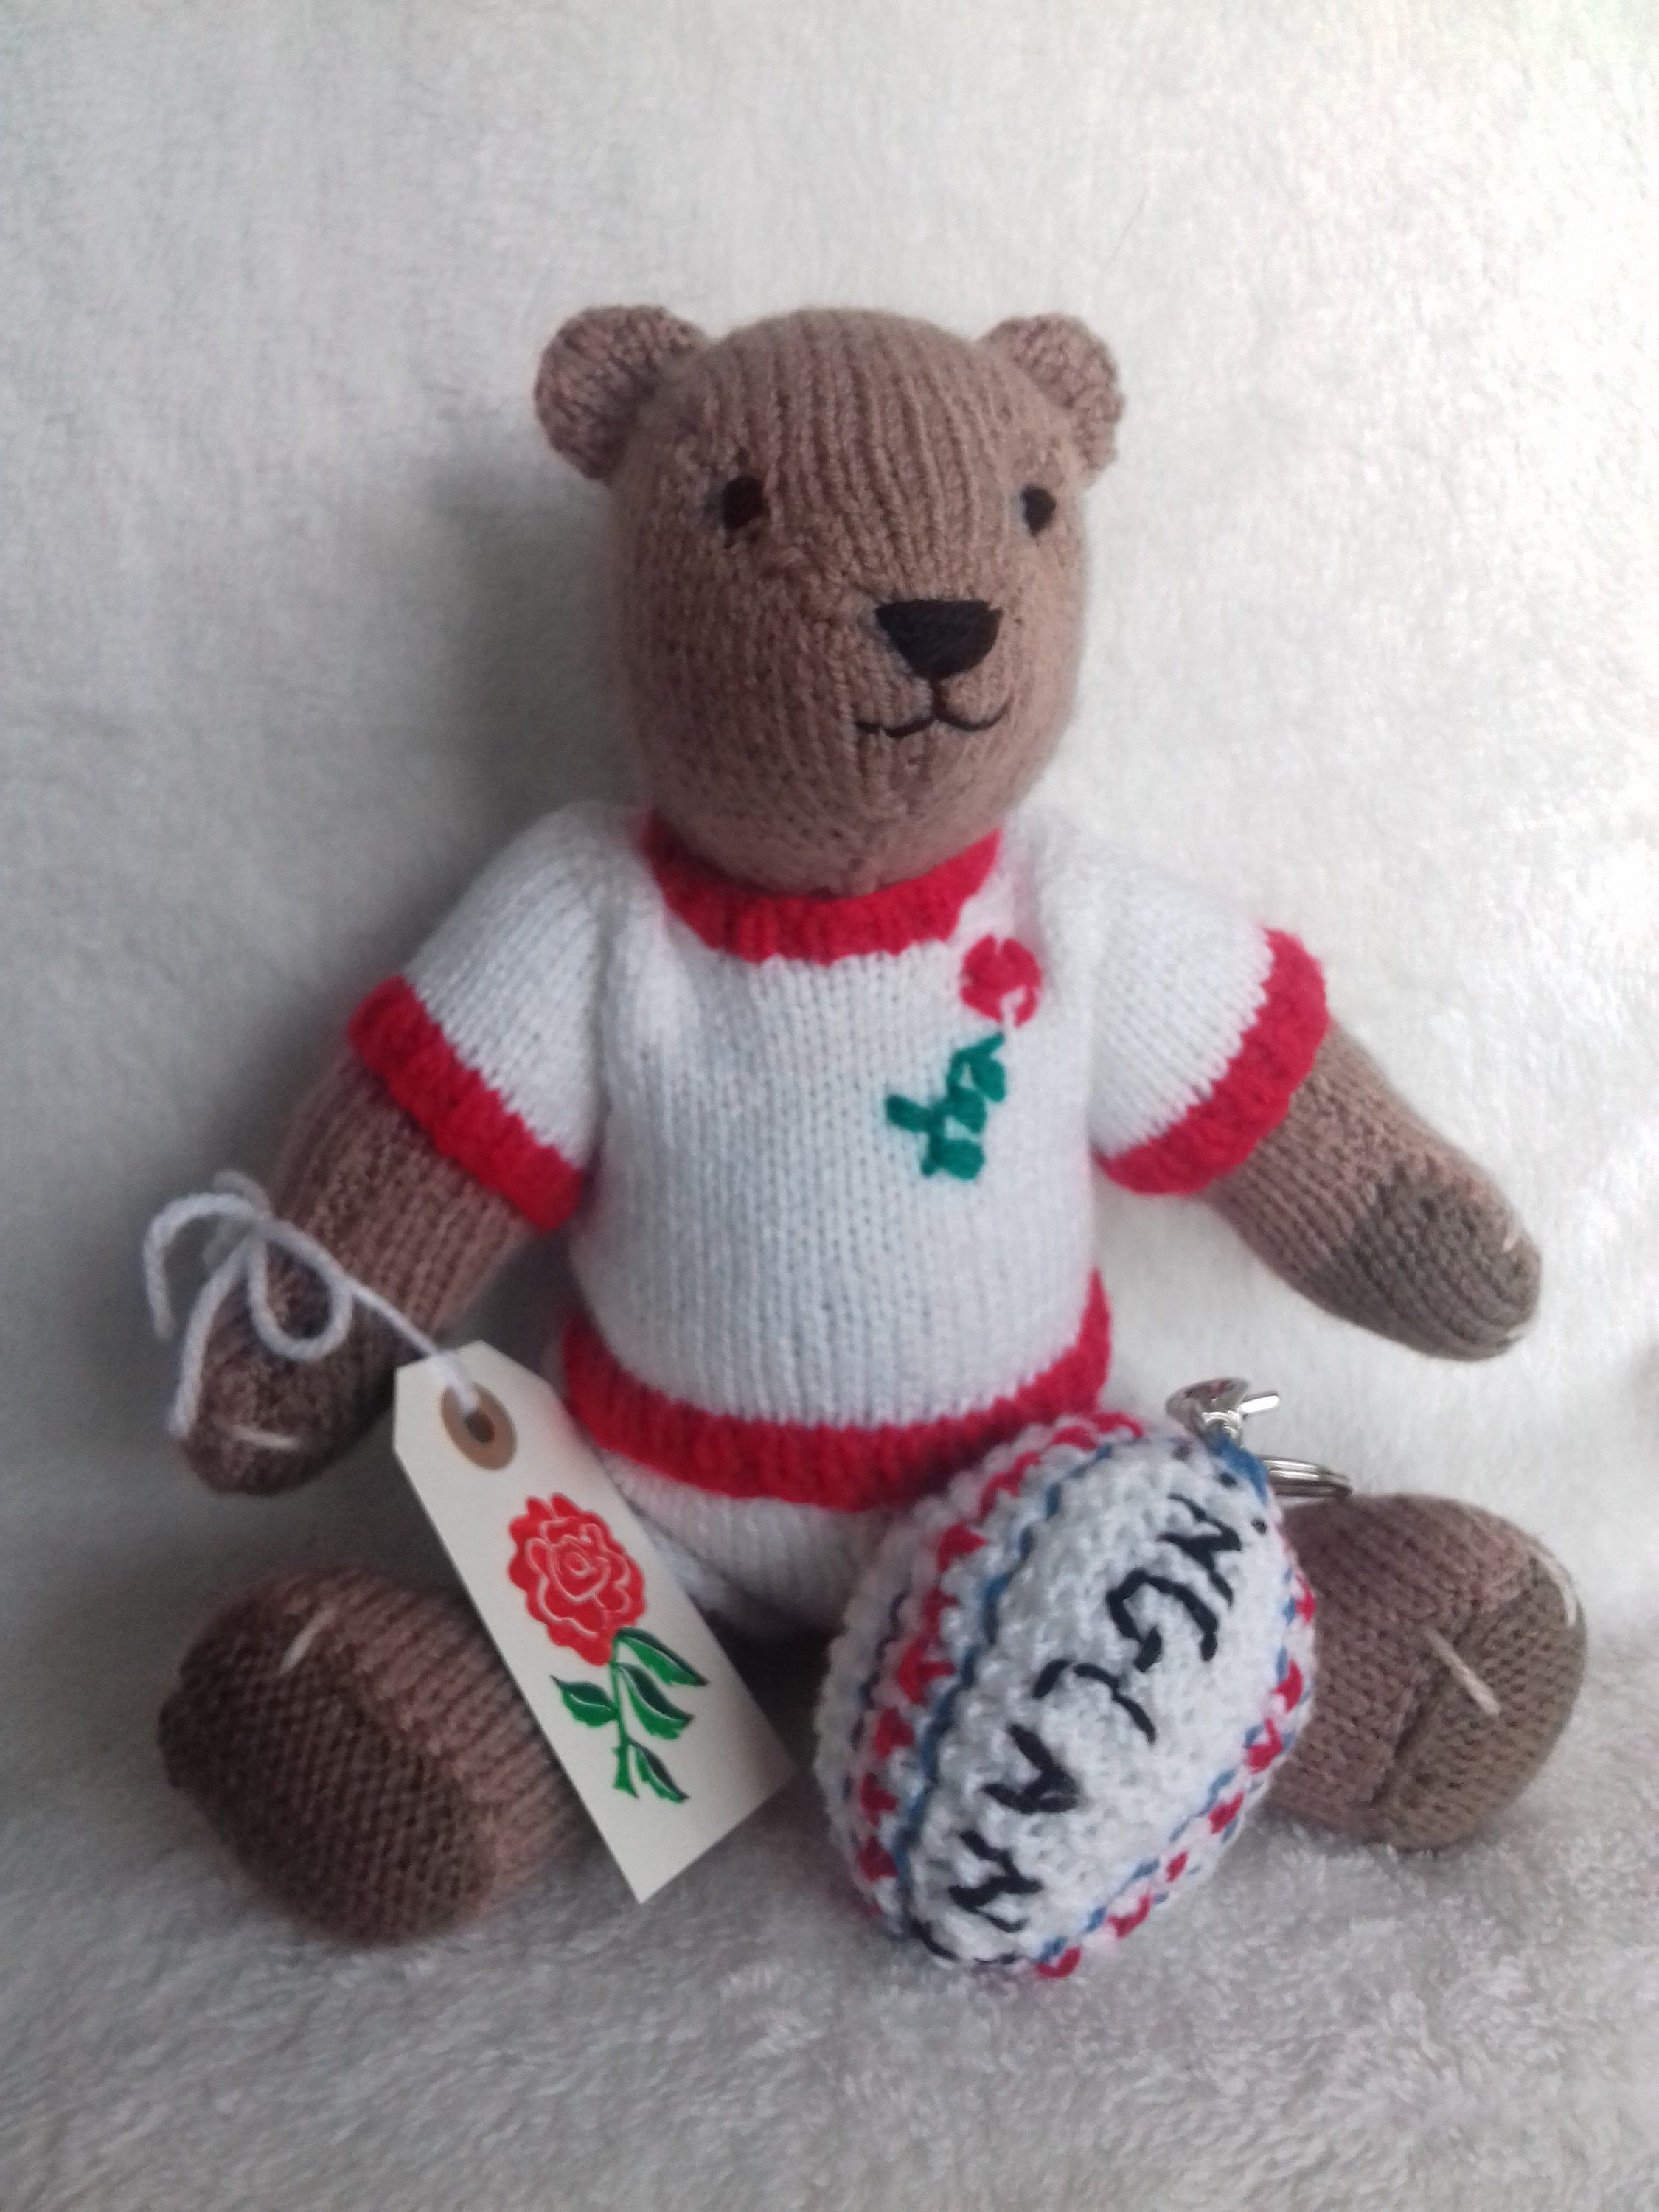 England Rugby Bear Unique Handmade Bear Sports Gifts Novelty Gifts Jointed Bear Rugby Fan Gifts Handmade Handmade Teddy Bears Novelty Gifts